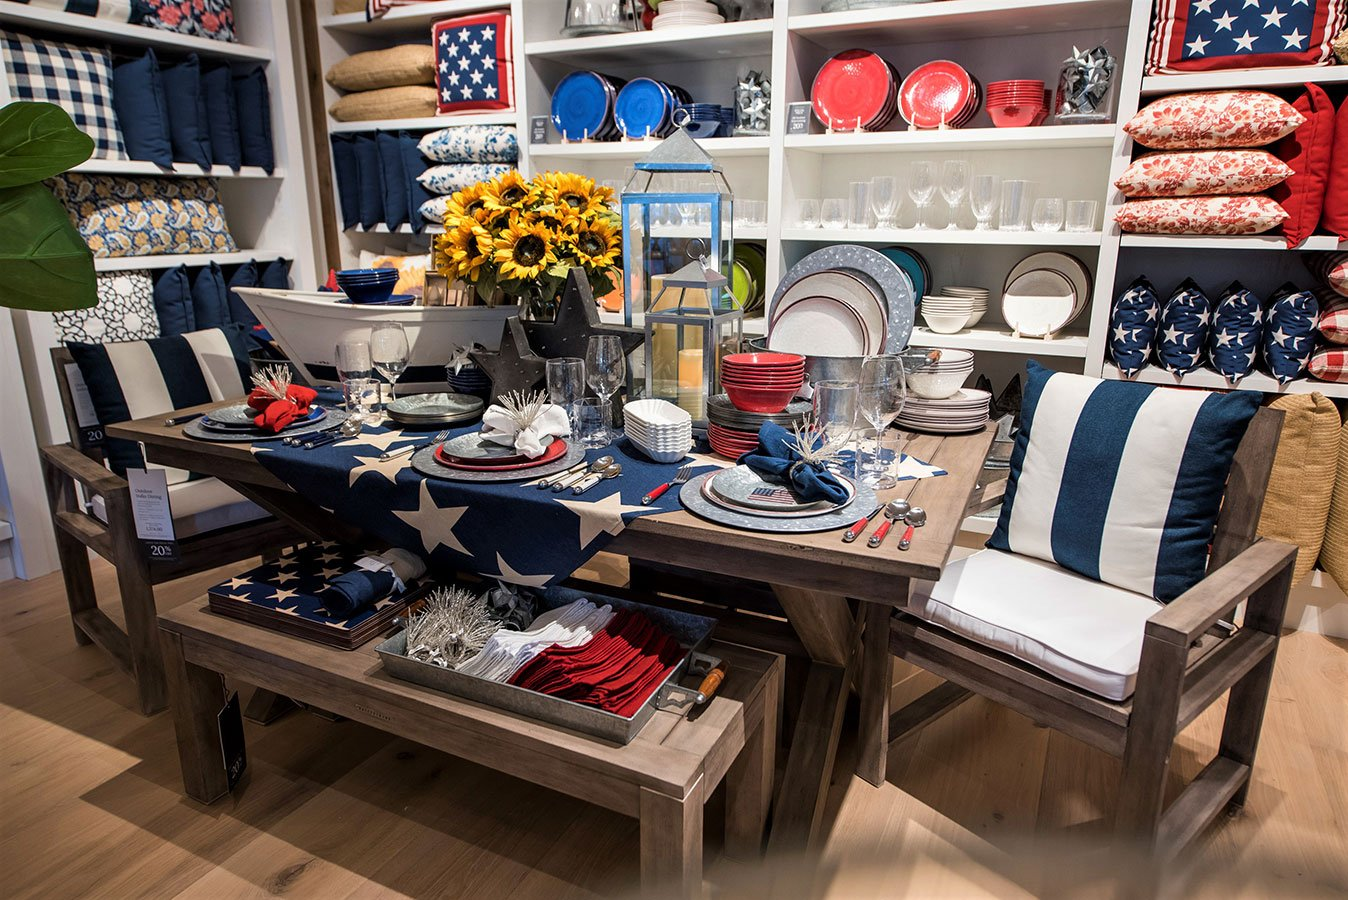 Galvanized Entertaining and Enamel Dinnerware collections on display at the Pottery Barn South Beach store